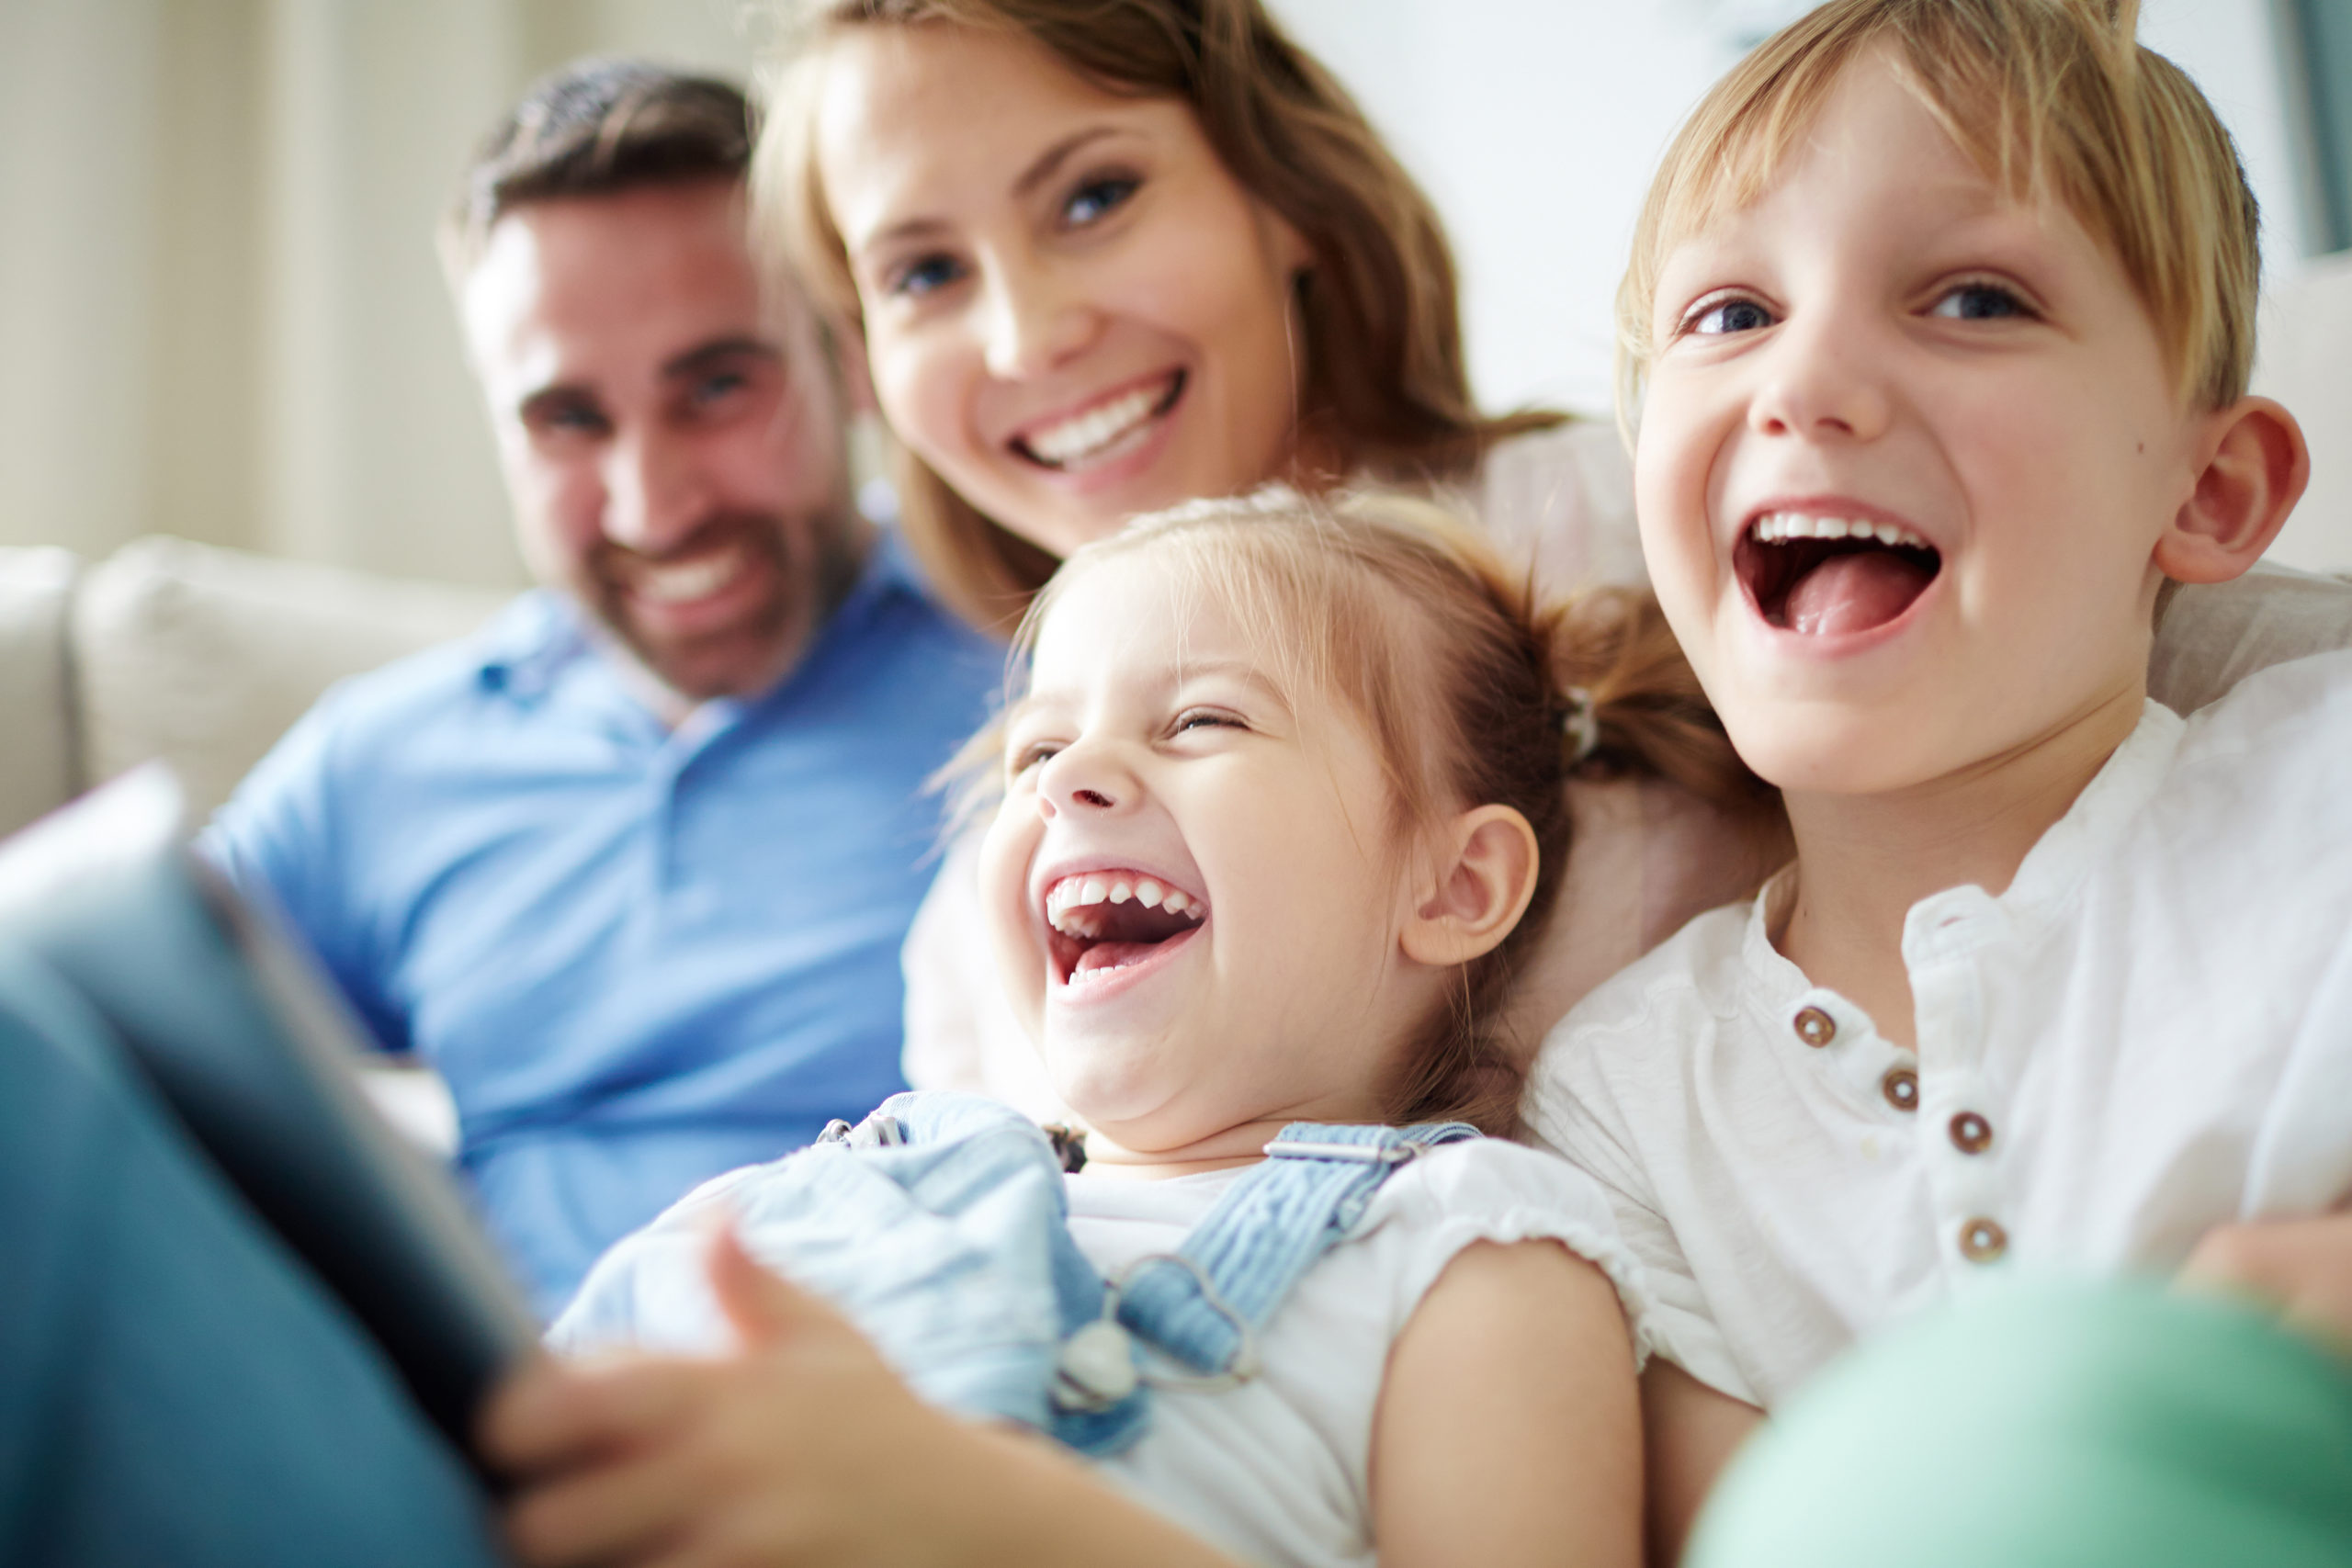 Children sitting together with parents and laughing